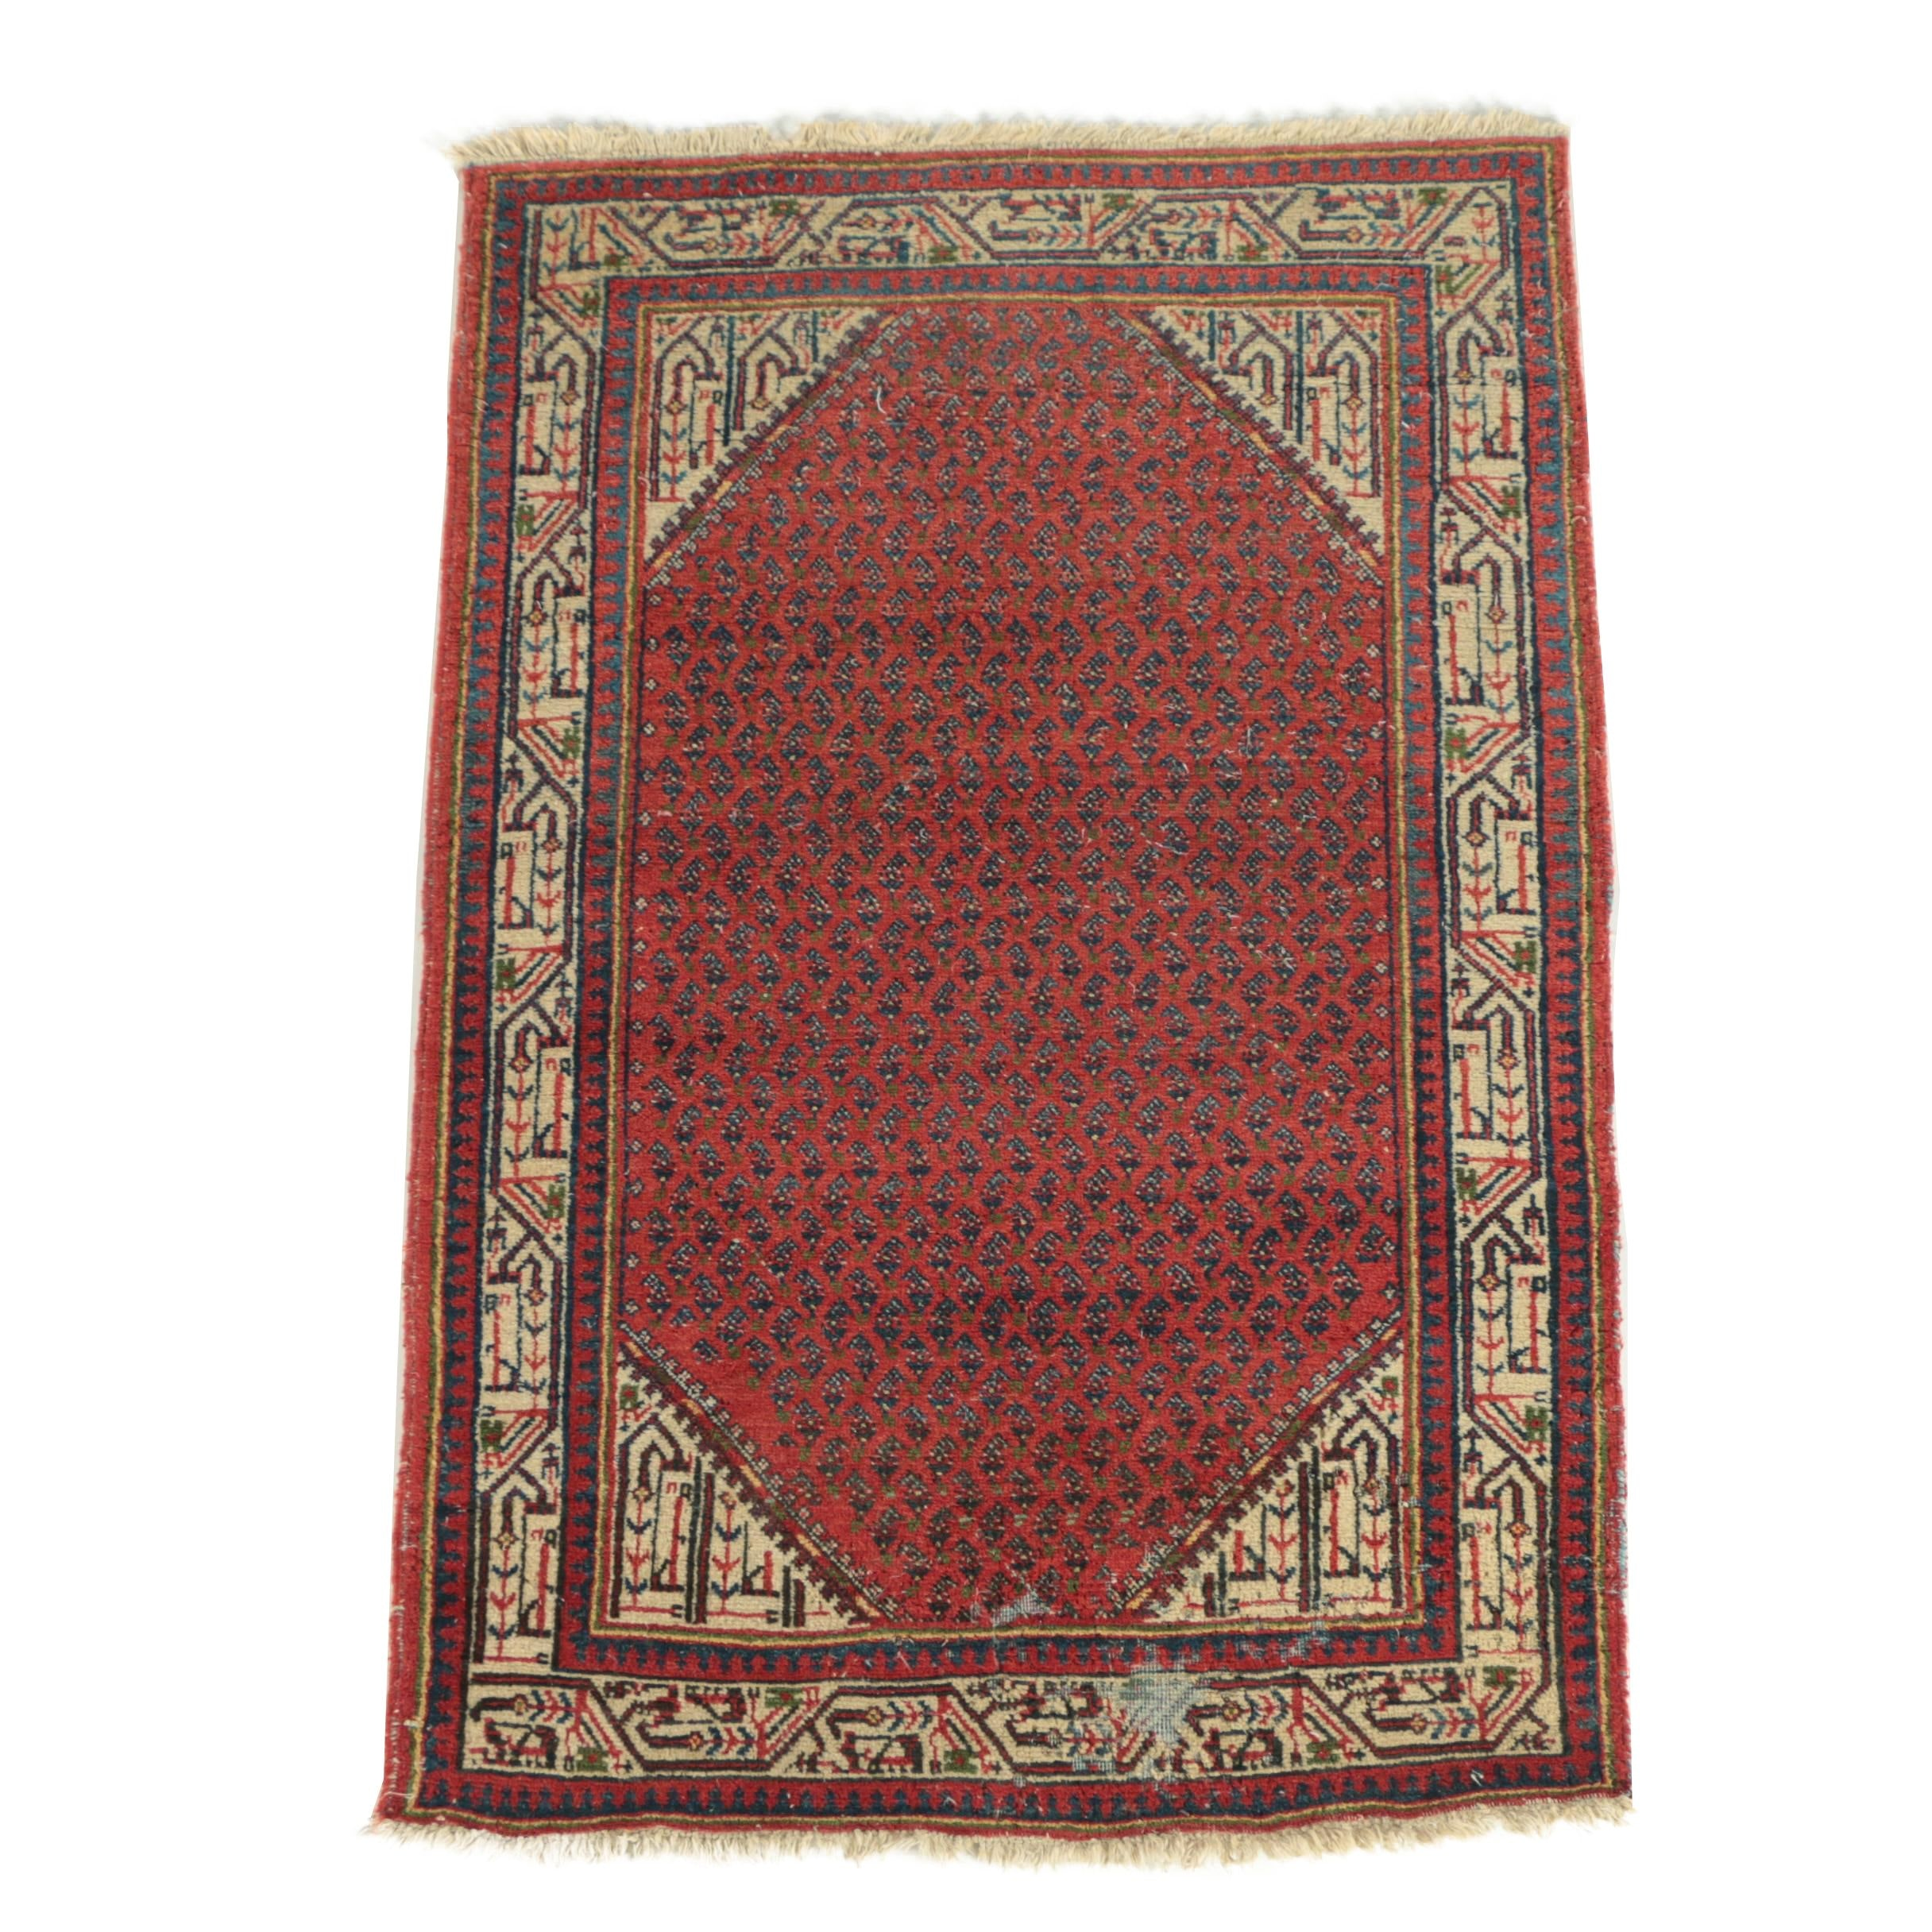 Hand-Knotted Persian Mir-Seraband Wool Area Rug